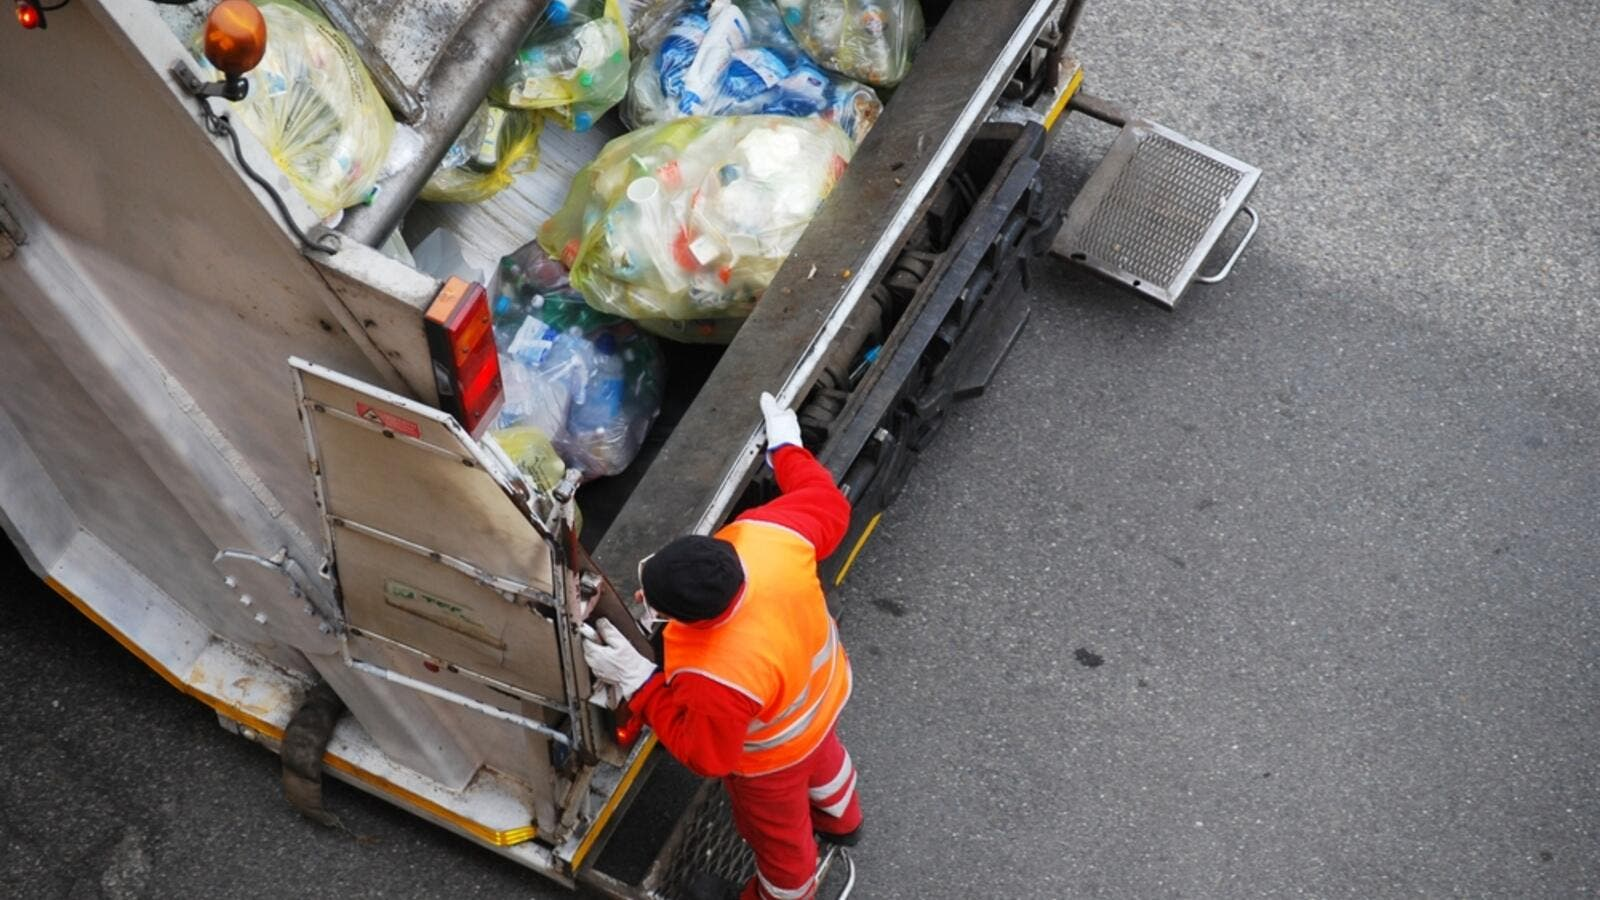 GIZ Funds First Wasting-Sorting Project in Jordan's Irbid to